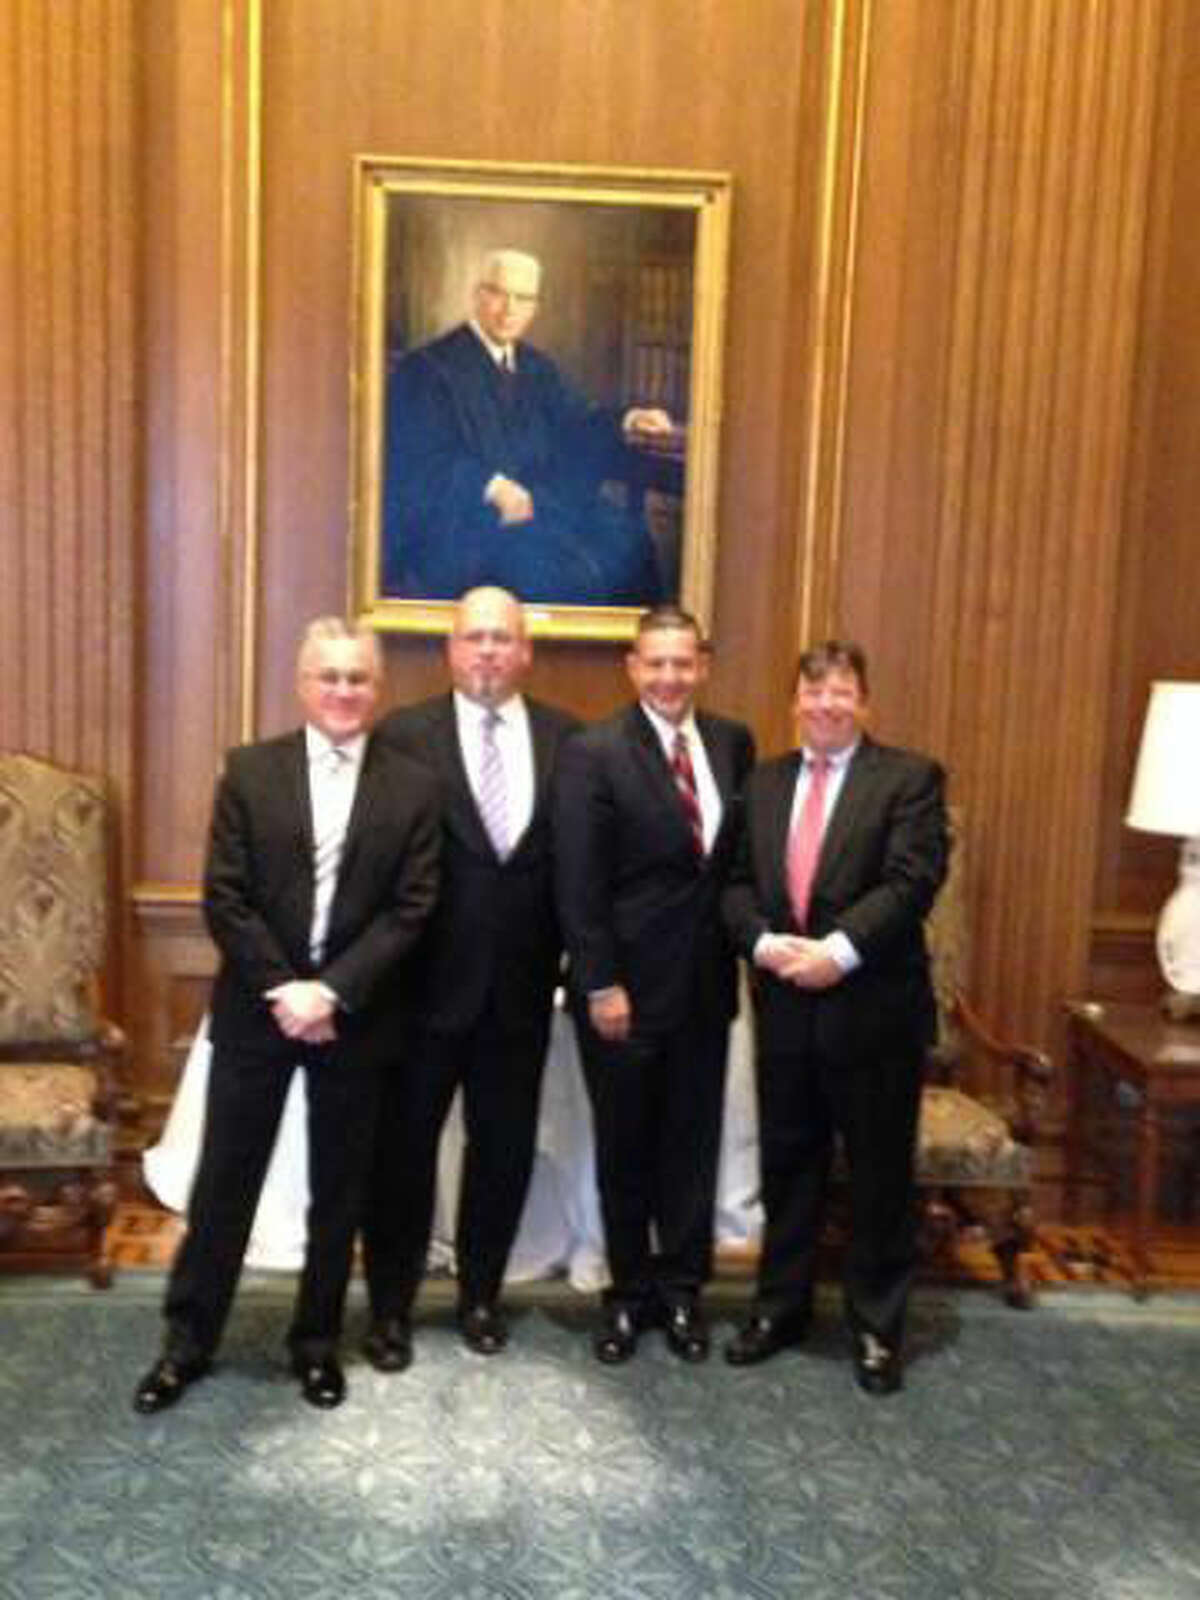 Contributed photo From left to right, Frank Bevilacqua, John Thygerson, Kevin Black and Matt Brovender visit the U.S. Supreme Court in Washington, DC.